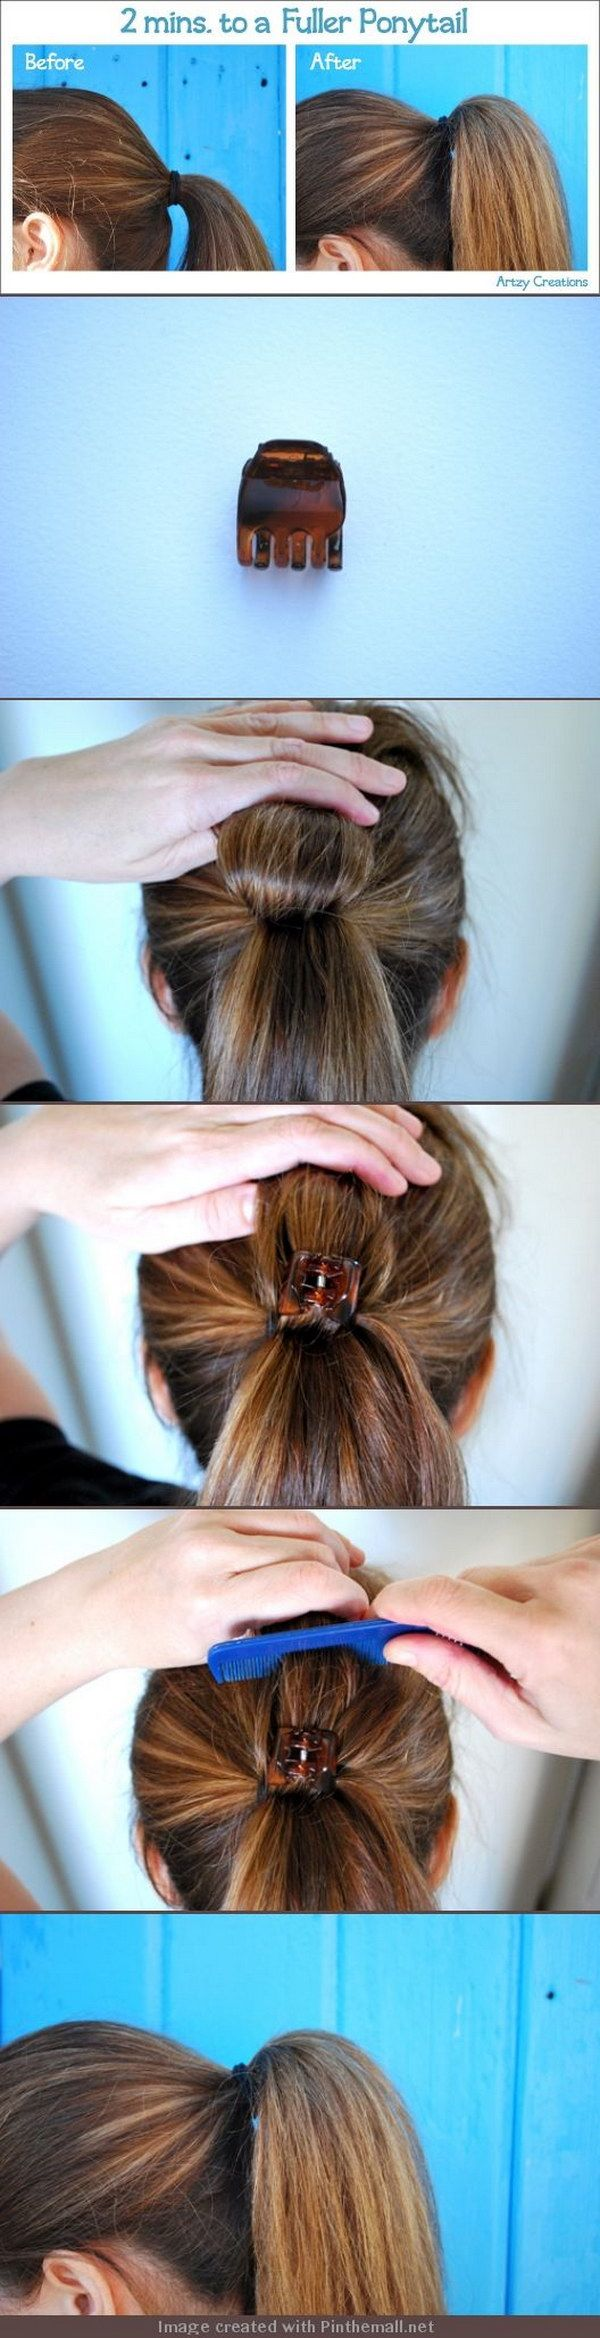 Put a Clip in Hair to Get a Fuller Ponytail